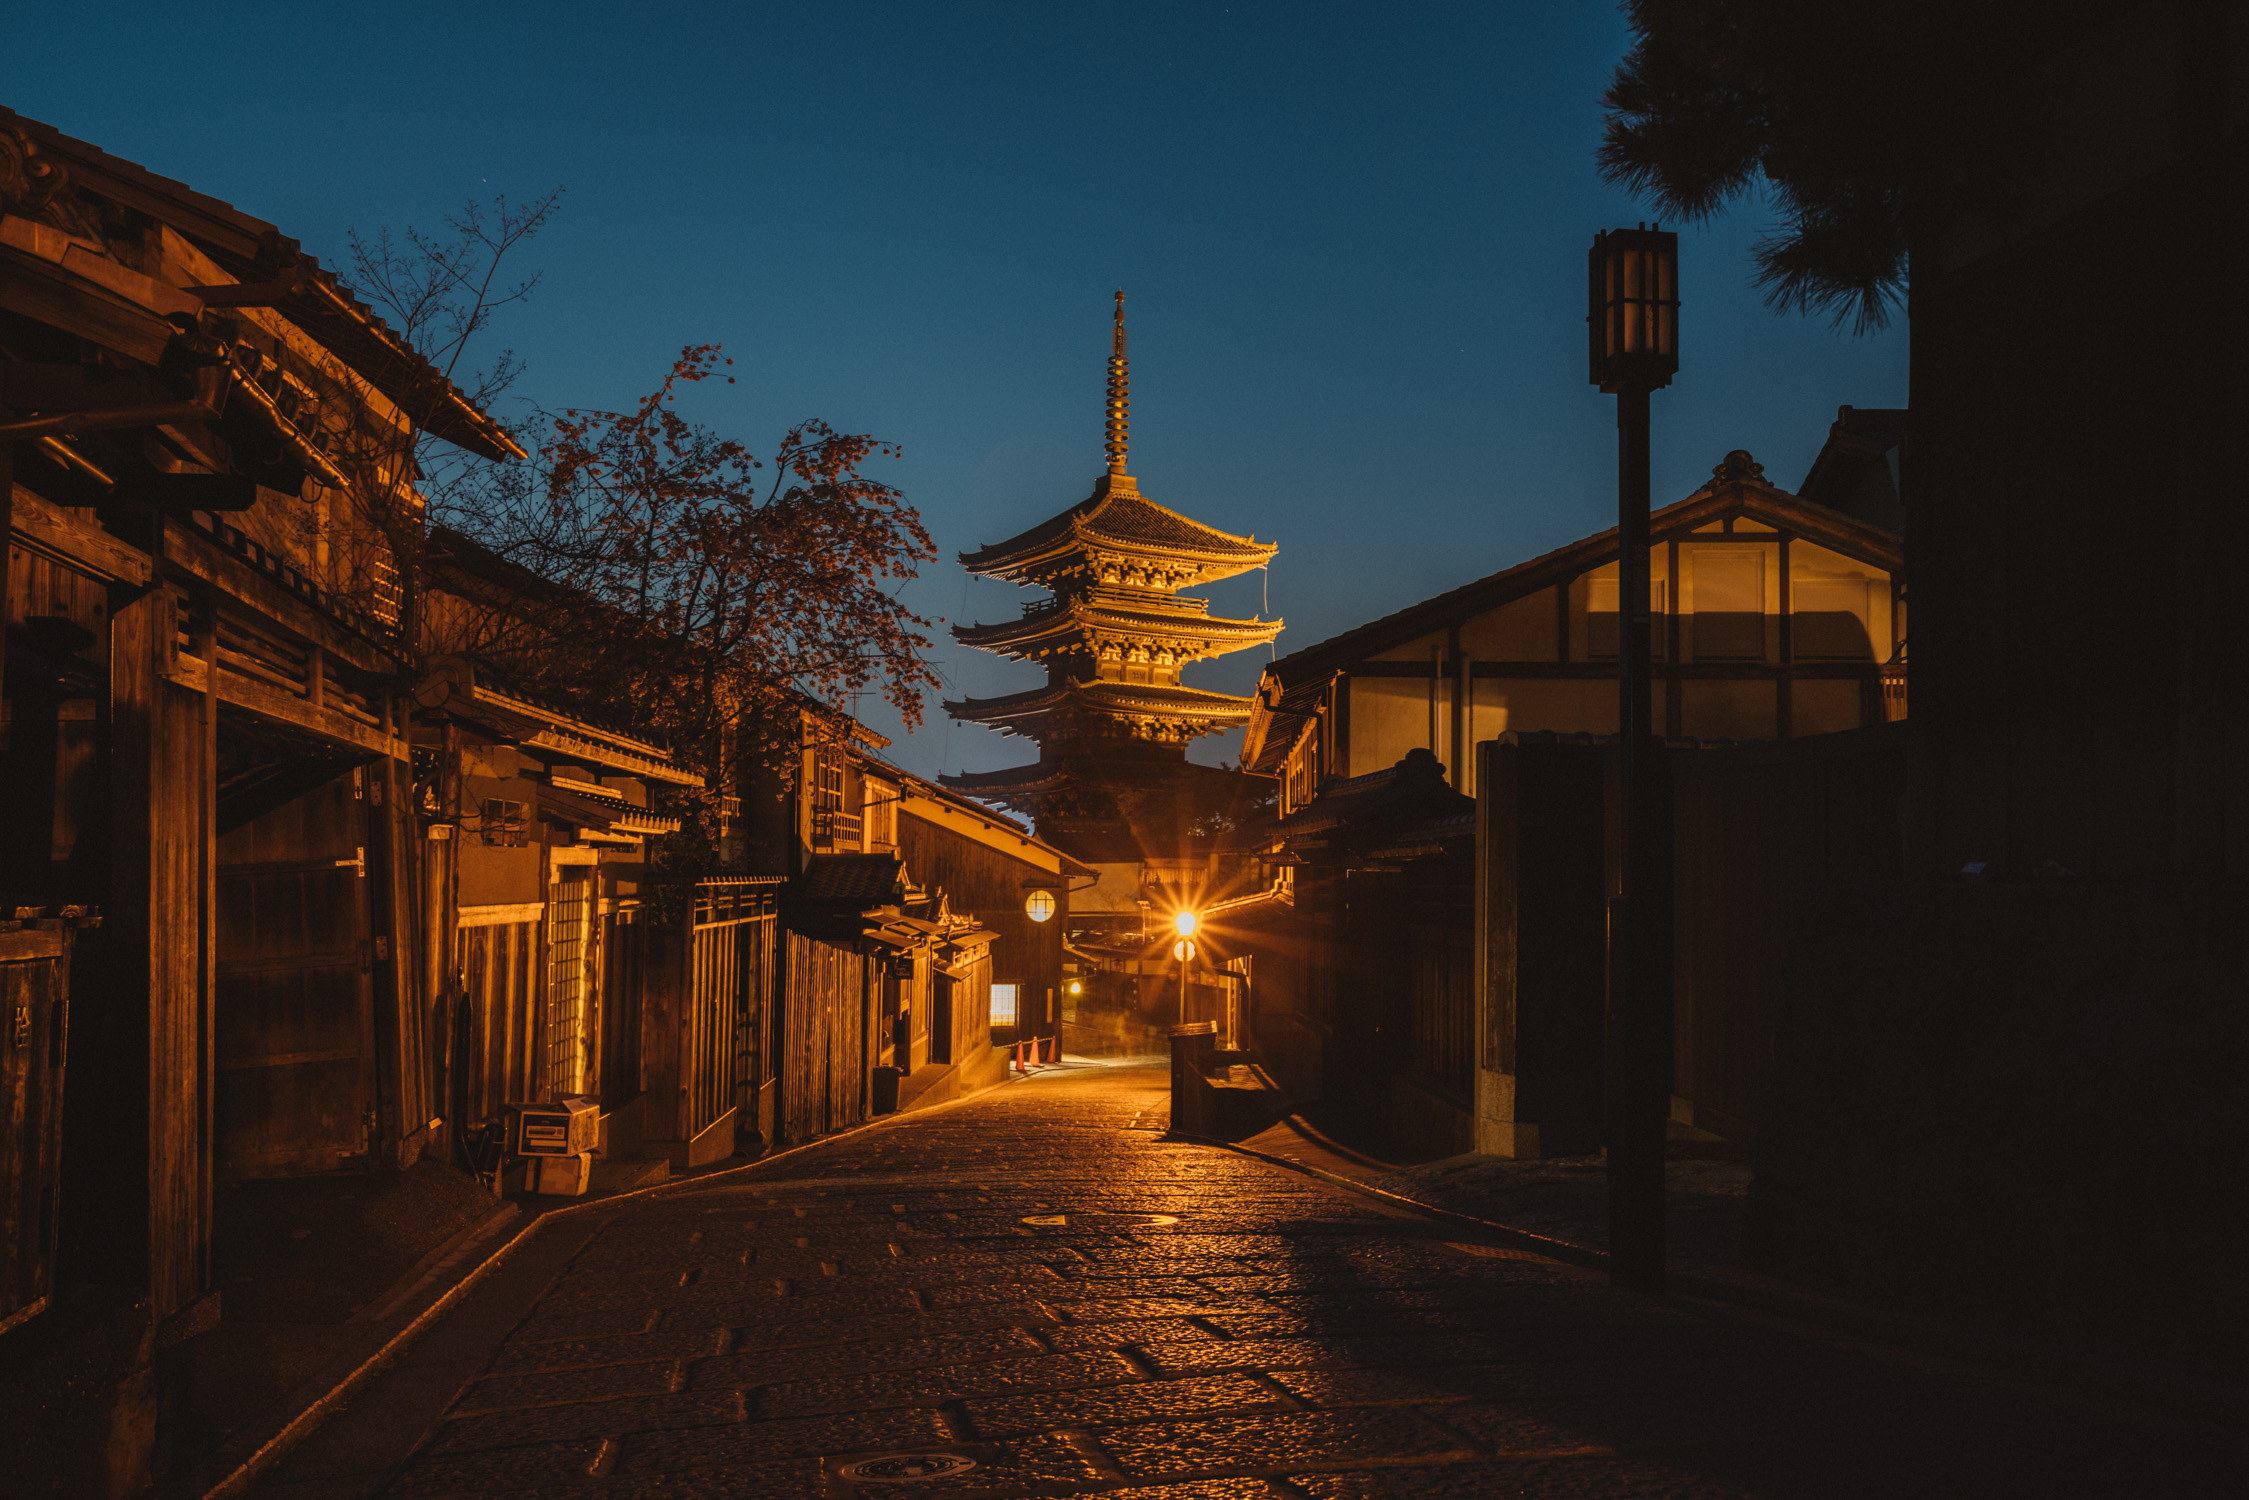 Hokanji kyoto at night time [David Tan]